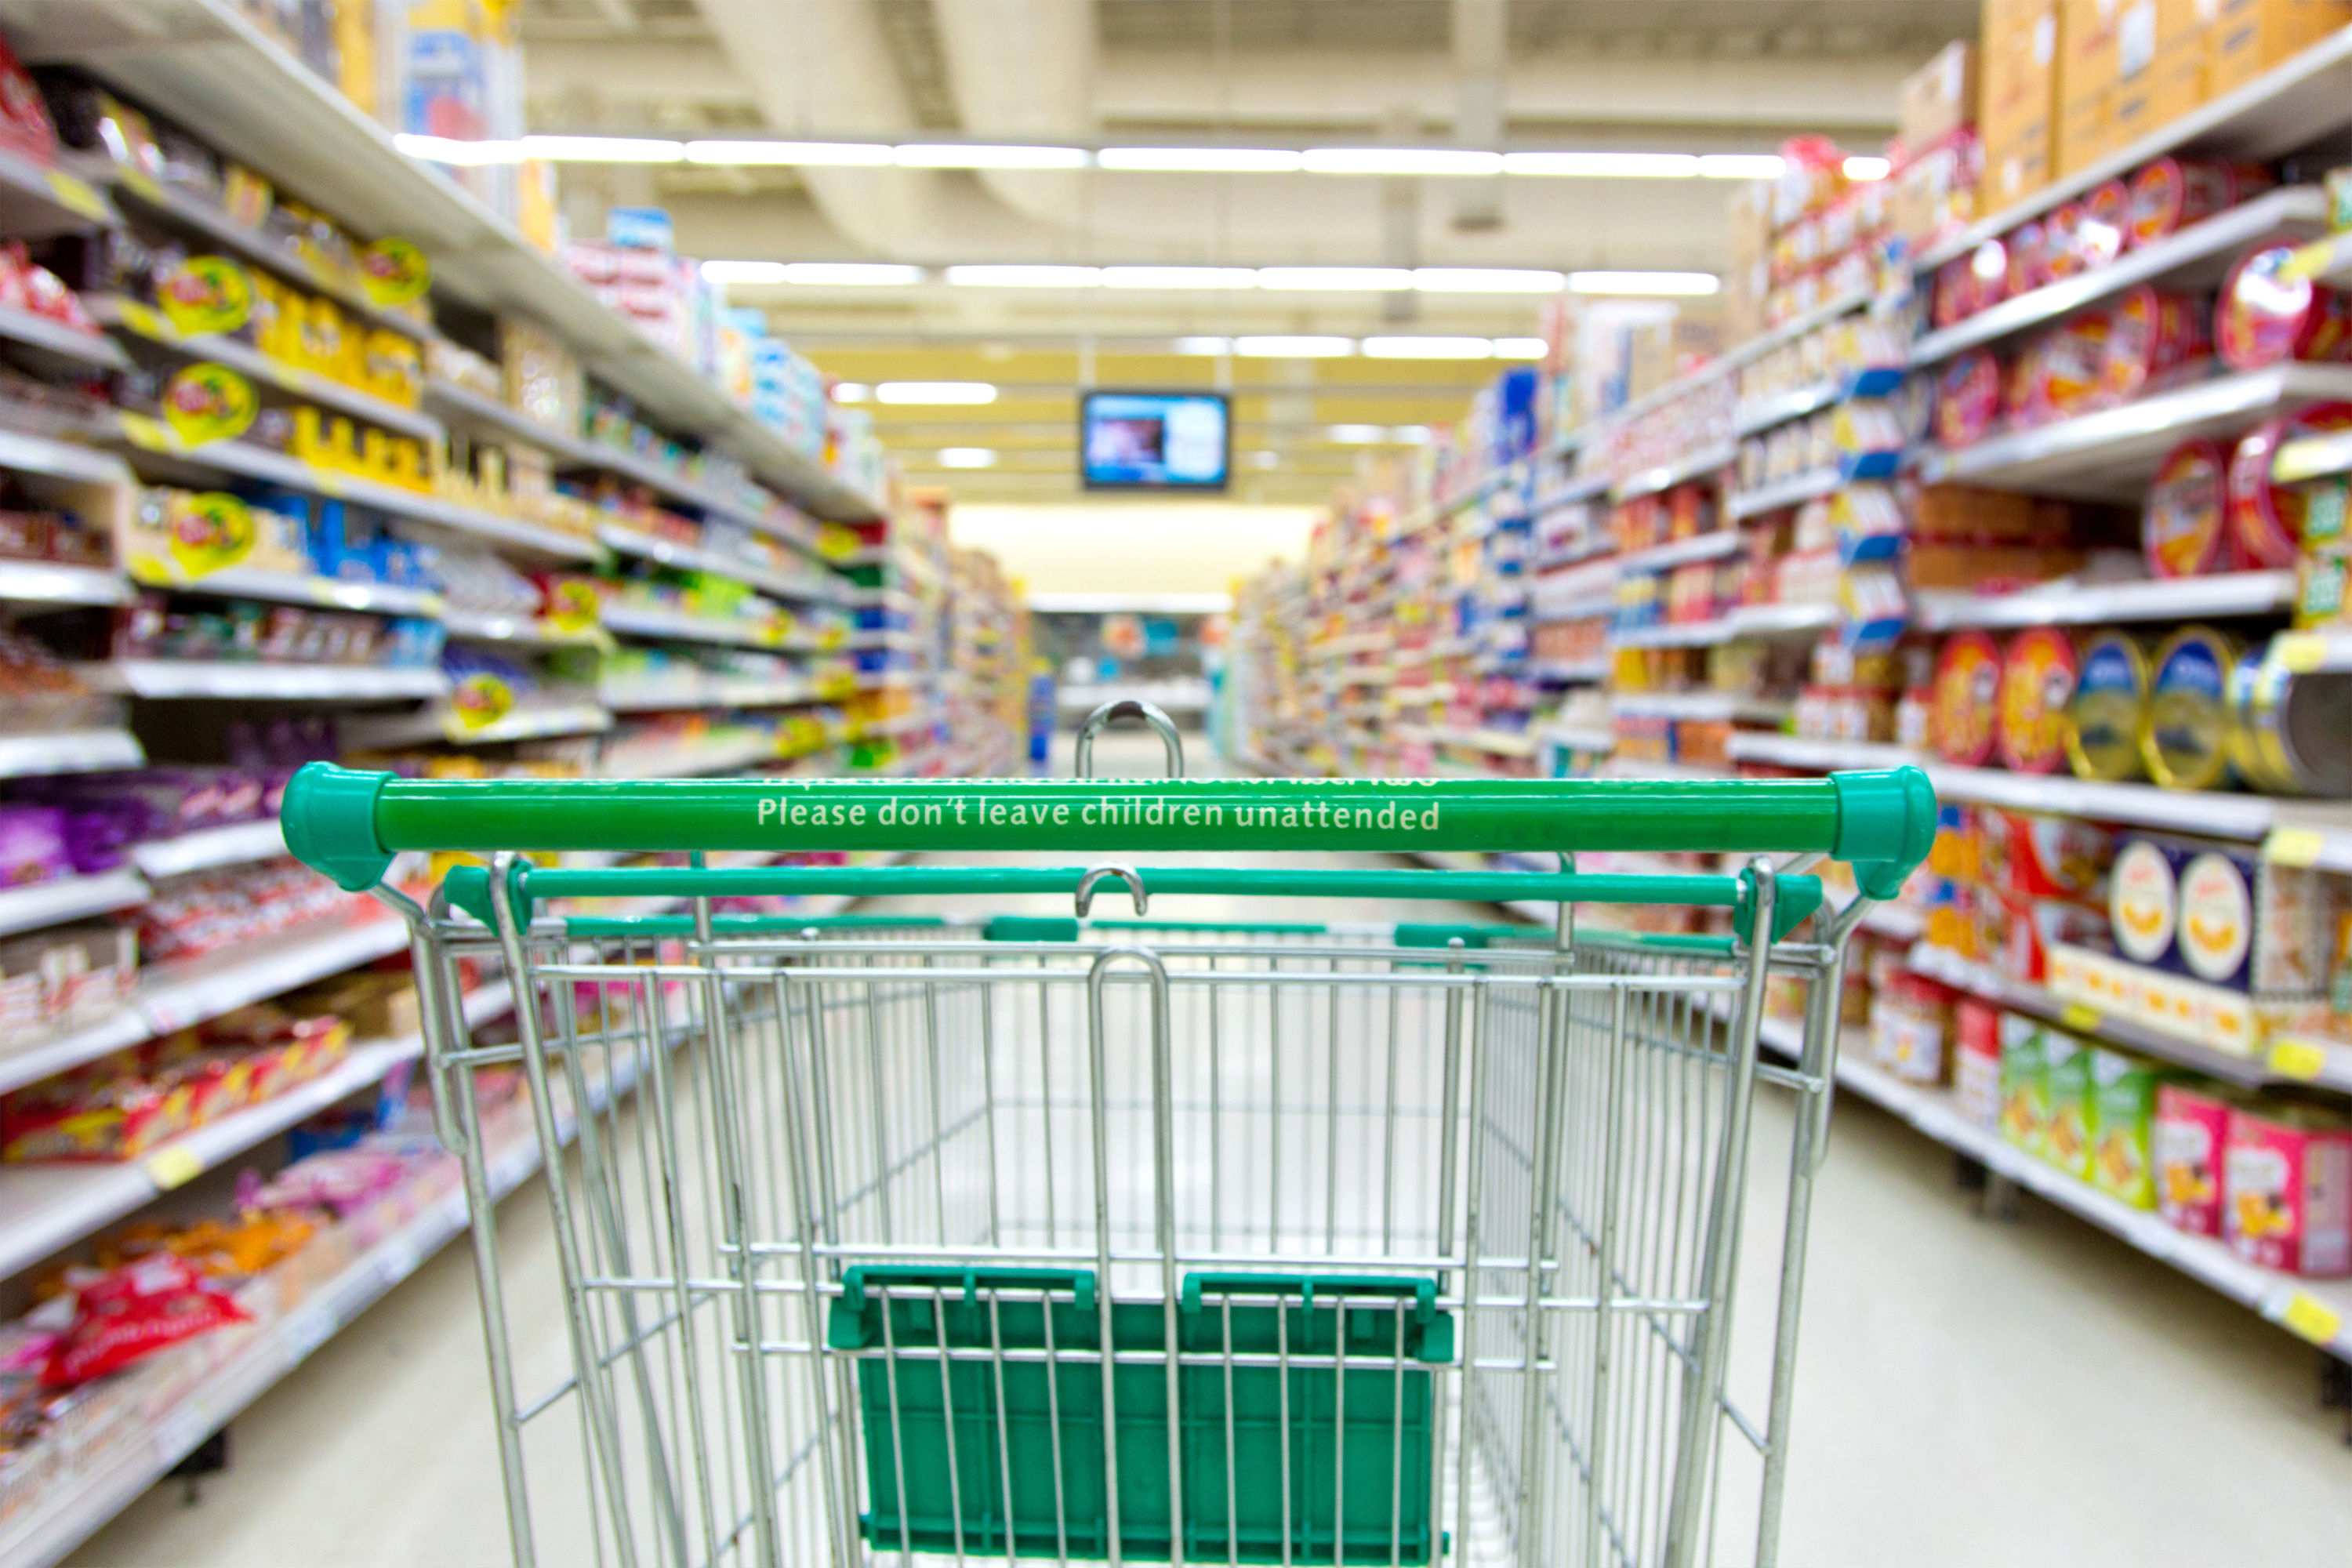 These Genius Supermarket Hacks Will Save You Time, Money, and Headaches